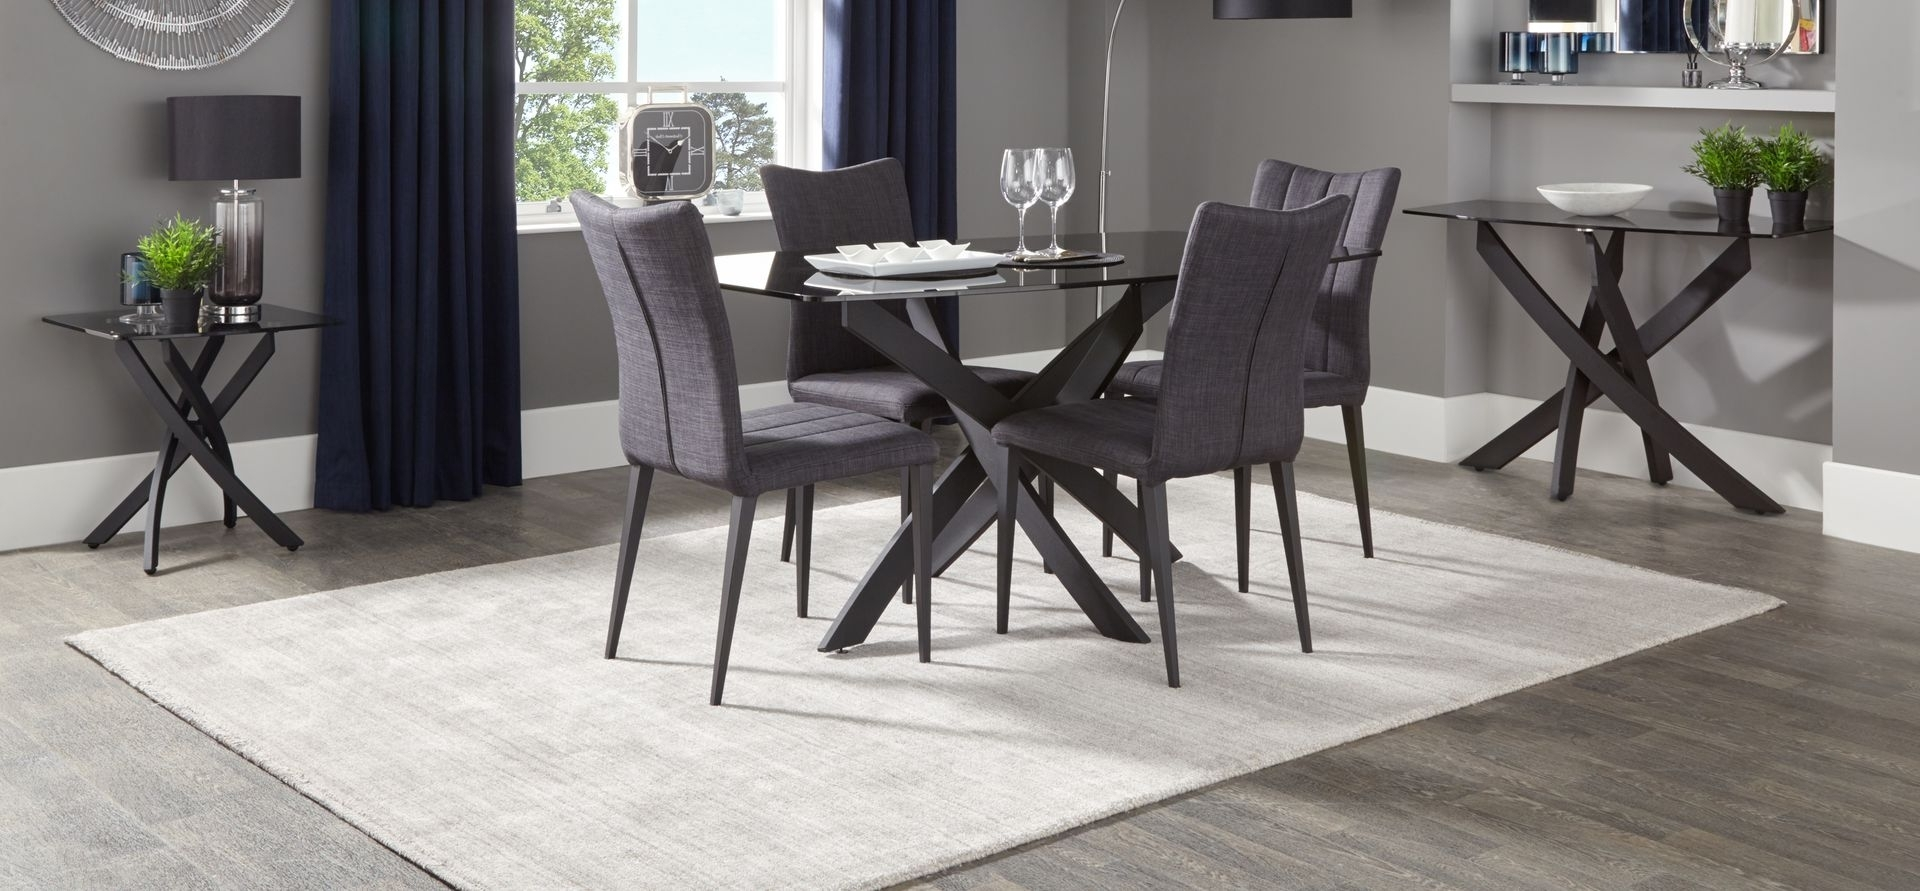 Scs Dining Room Furniture – Cheekybeaglestudios Throughout Latest Scs Dining Tables (View 4 of 25)